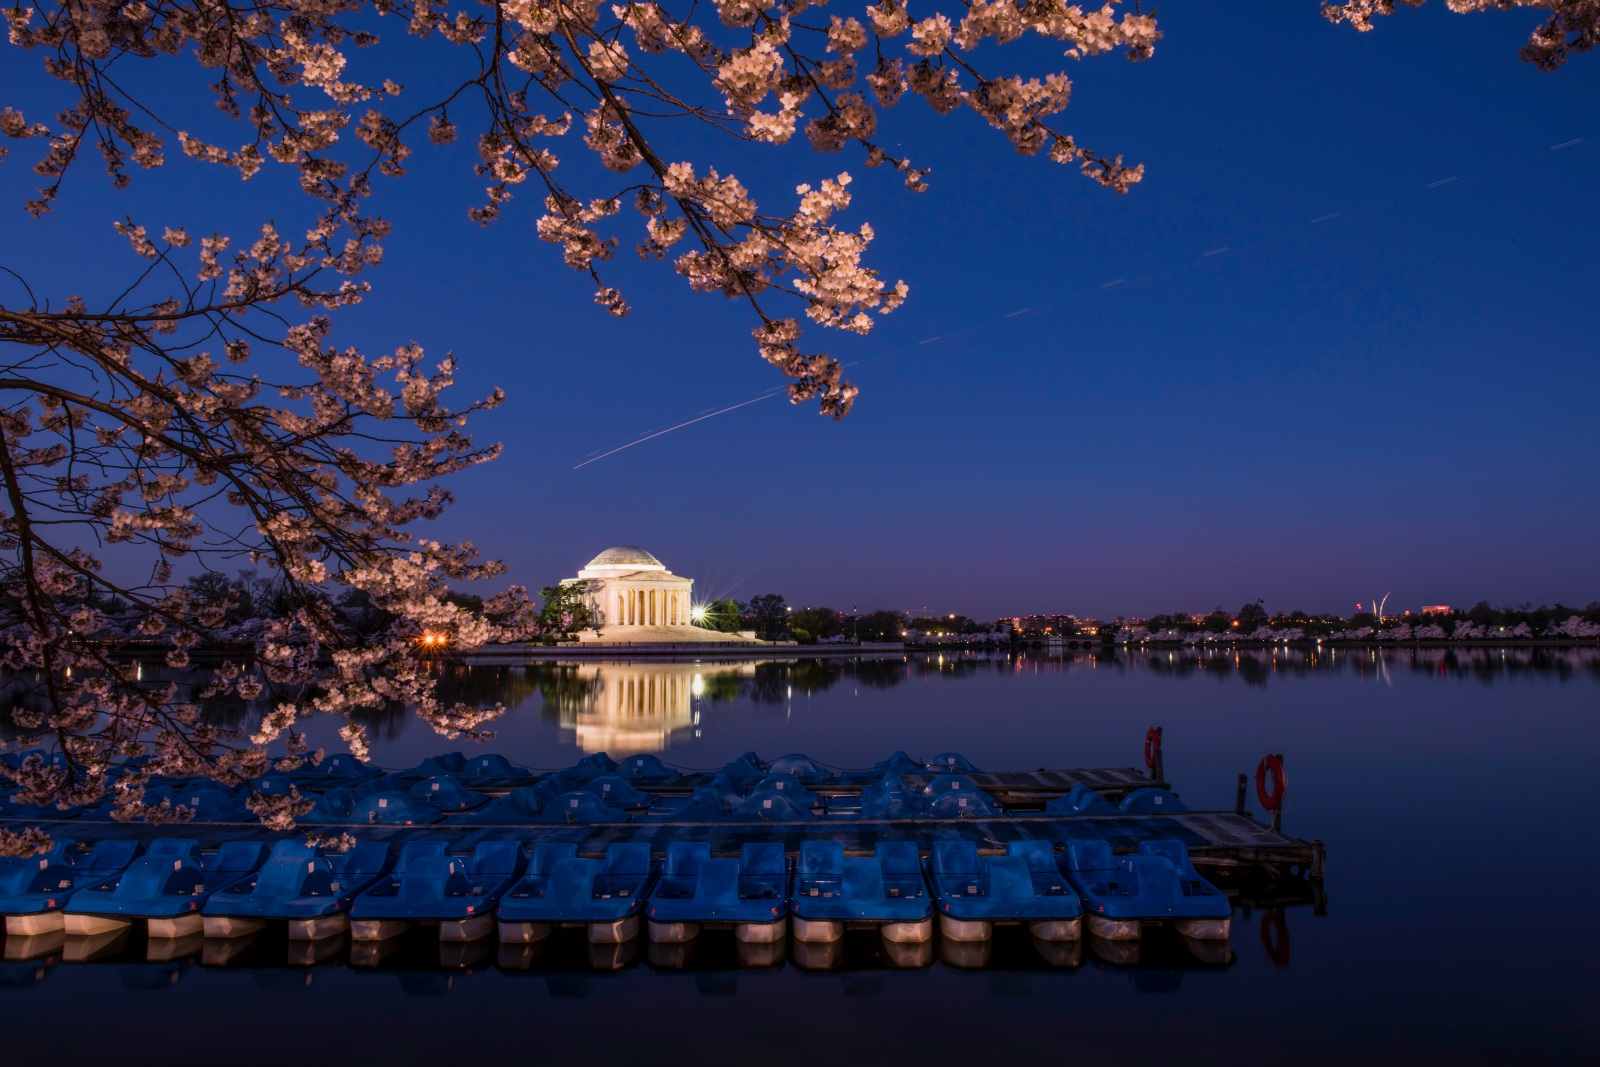 Spring Night of Tidal Basin